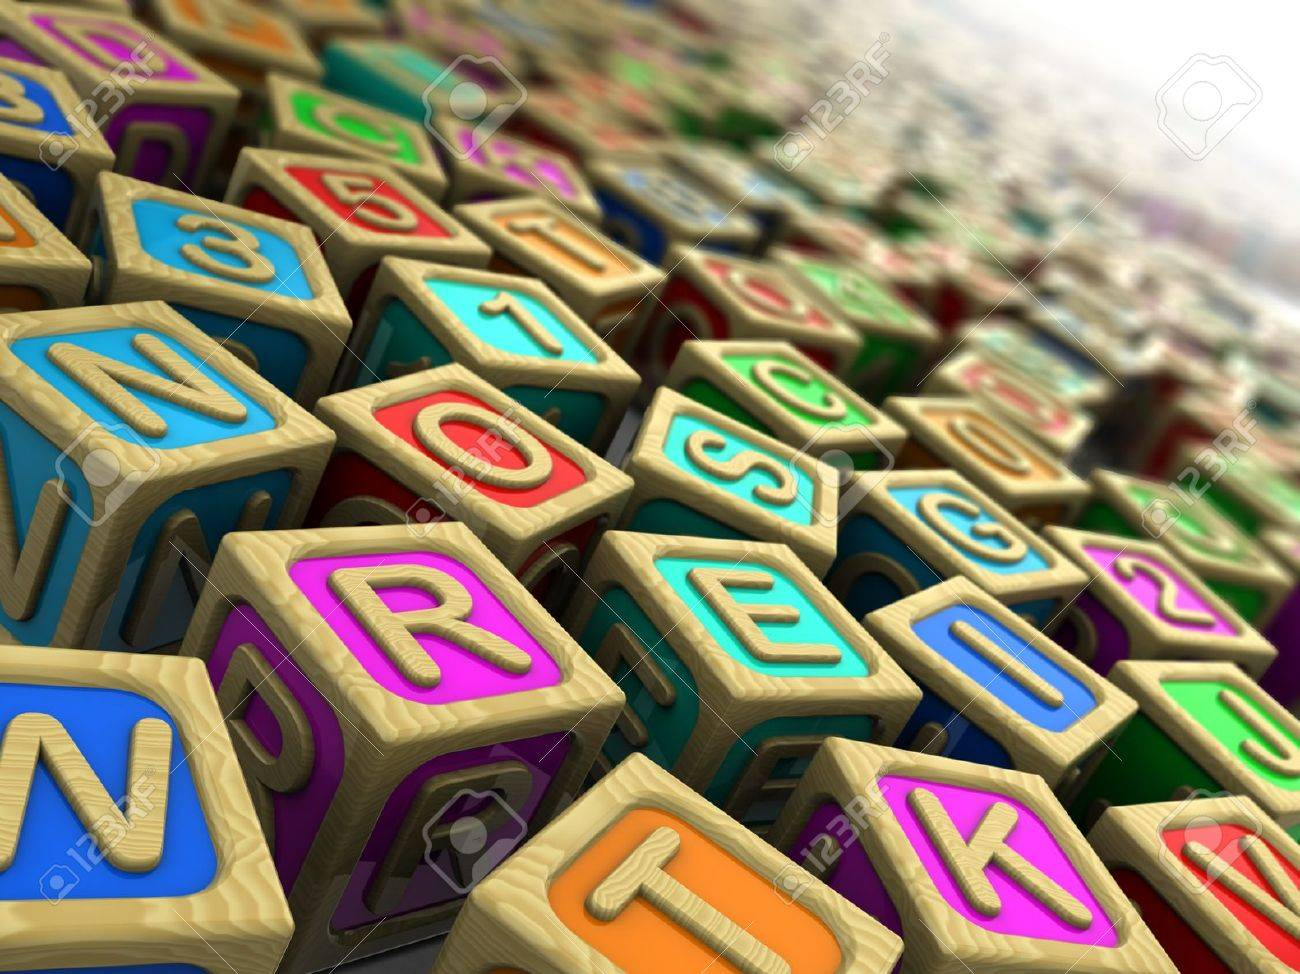 3d illustration  wooden cubes with letters and numbers Stock Illustration - 15209571